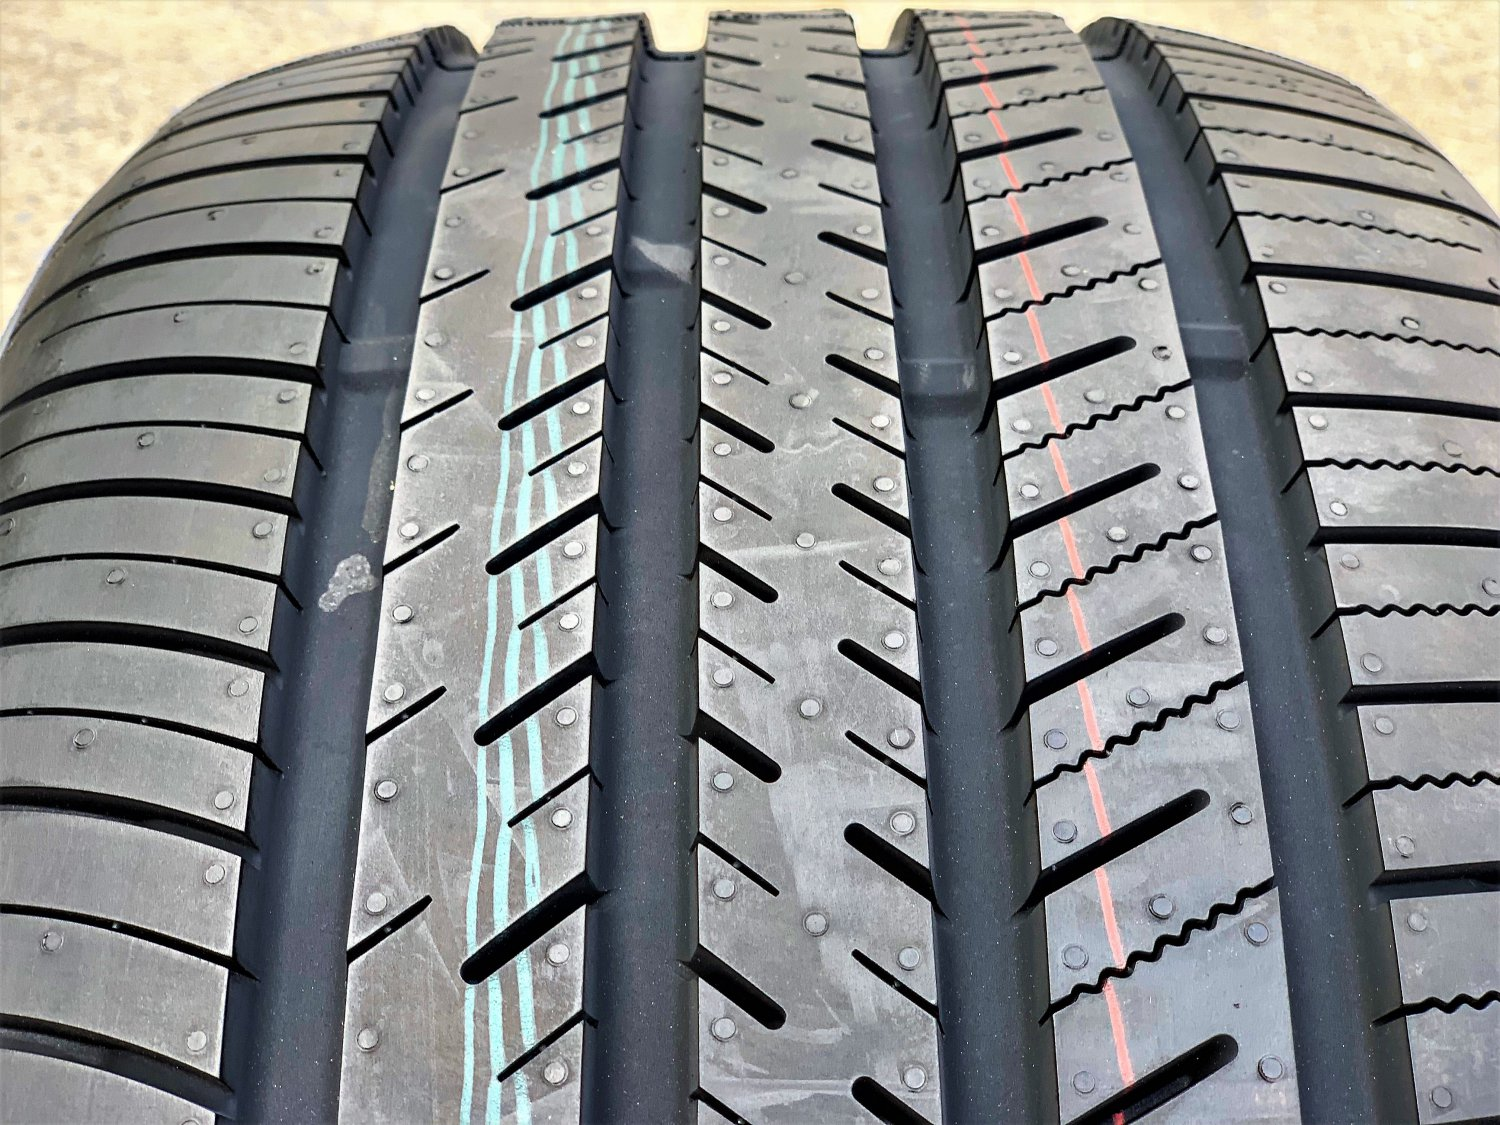 Atlas Tire Force UHP 275/25R24 96W XL A/S Performance